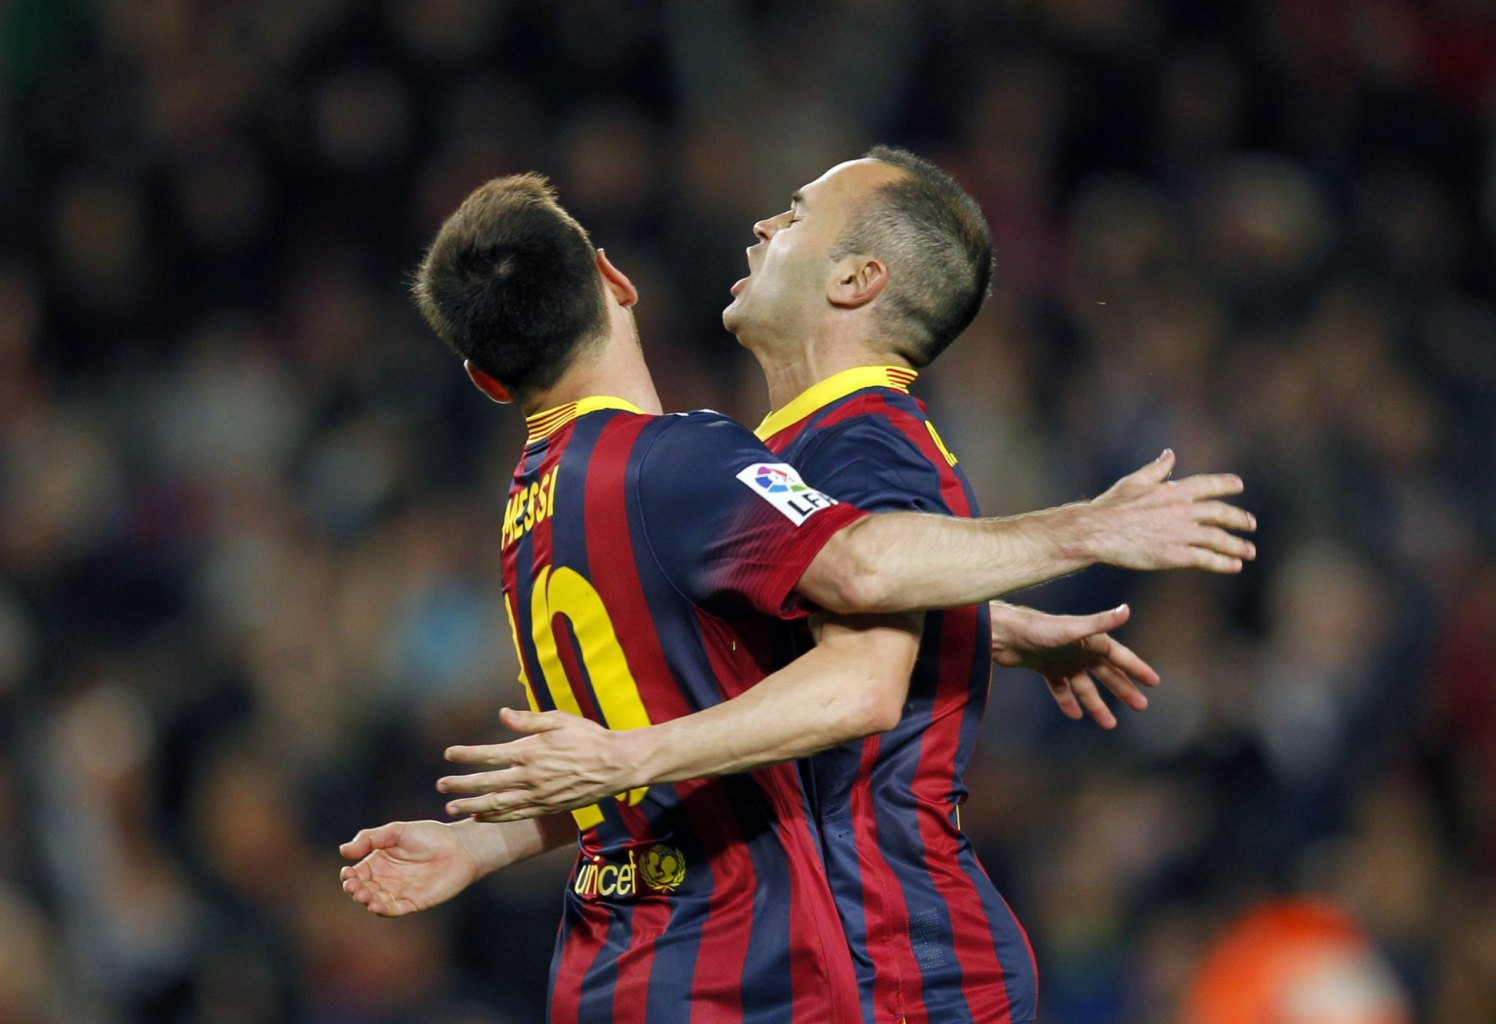 Lionel Messi and Andrés Iniesta clashing their chests